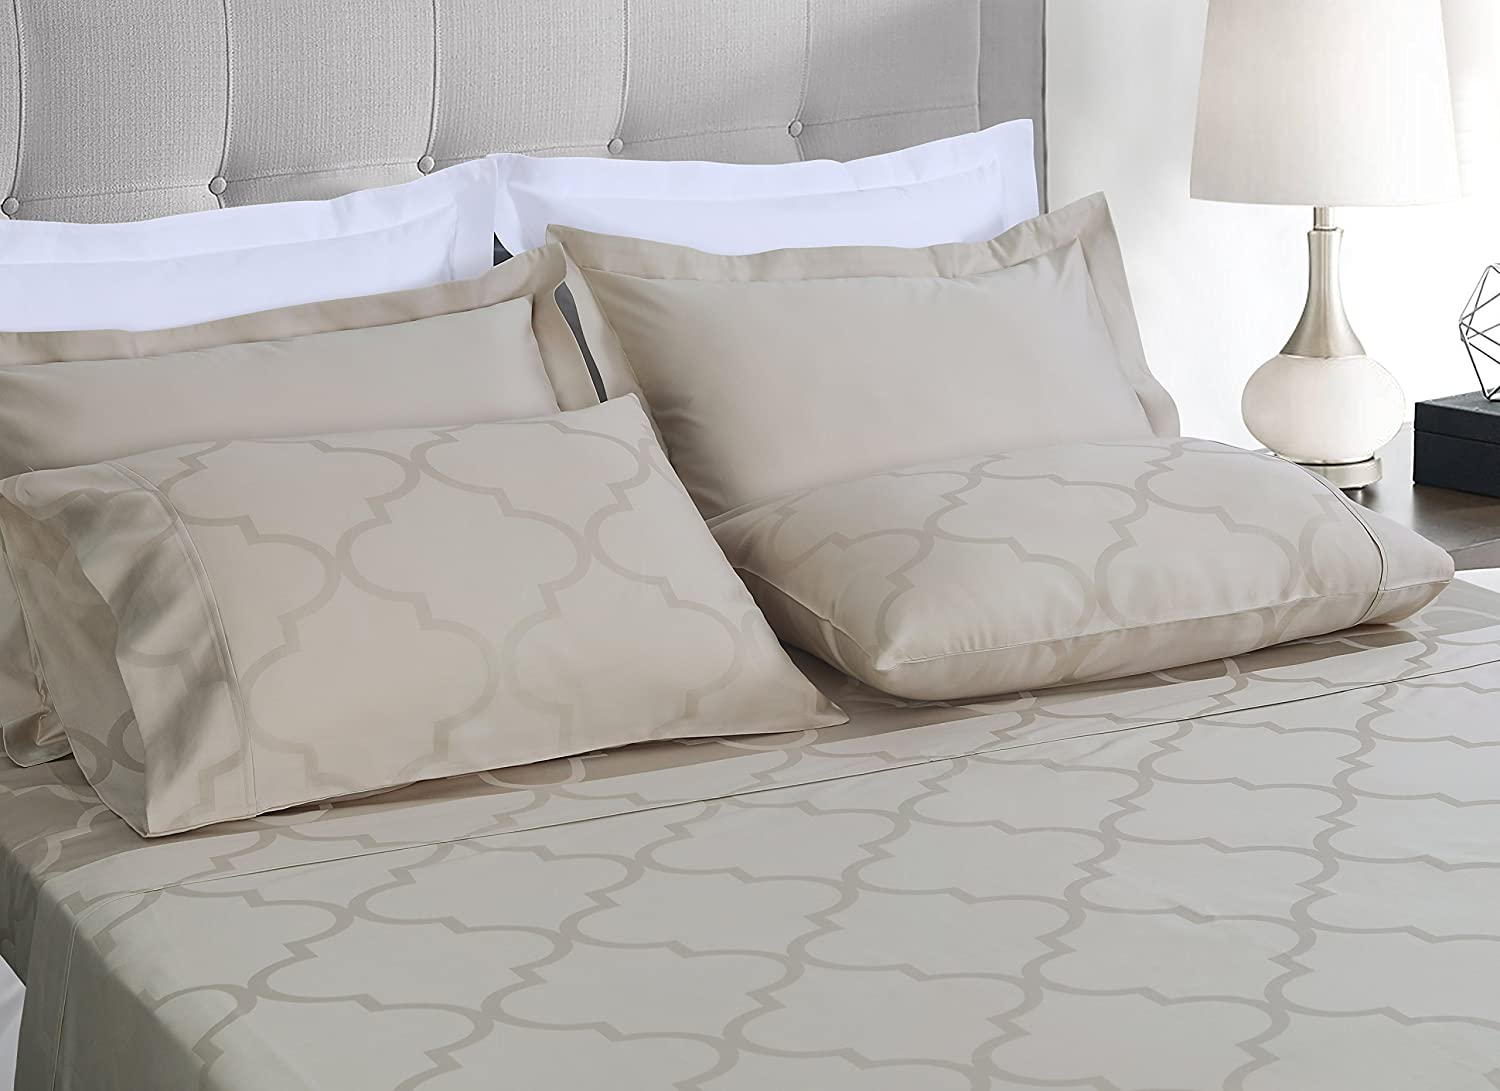 Threadmill Home Linen 300 Thread Count Astra Jacquard Collection 100/% Cotton Sheets 4 Piece Bedsheet Set Luxury Bedding Fits Mattresses up to 18 inch deep Pocket Smooth Sateen King Beige